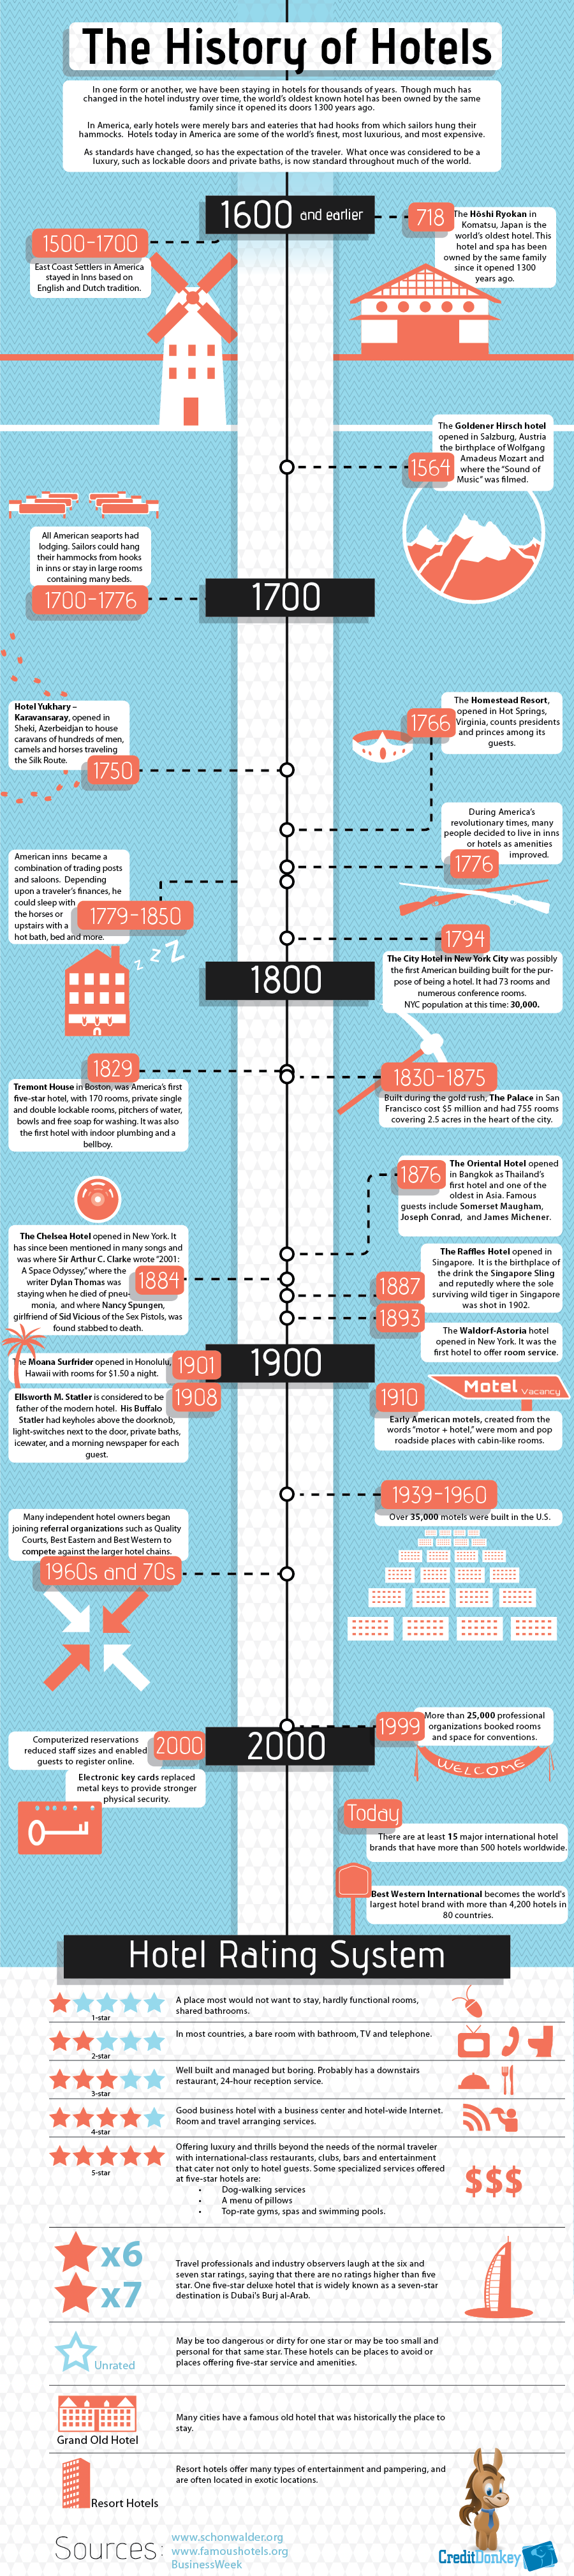 The History Of Hotels Infographic Timeline From 817 First Hotel To 2012 With Star Rating - Hotel Rates History